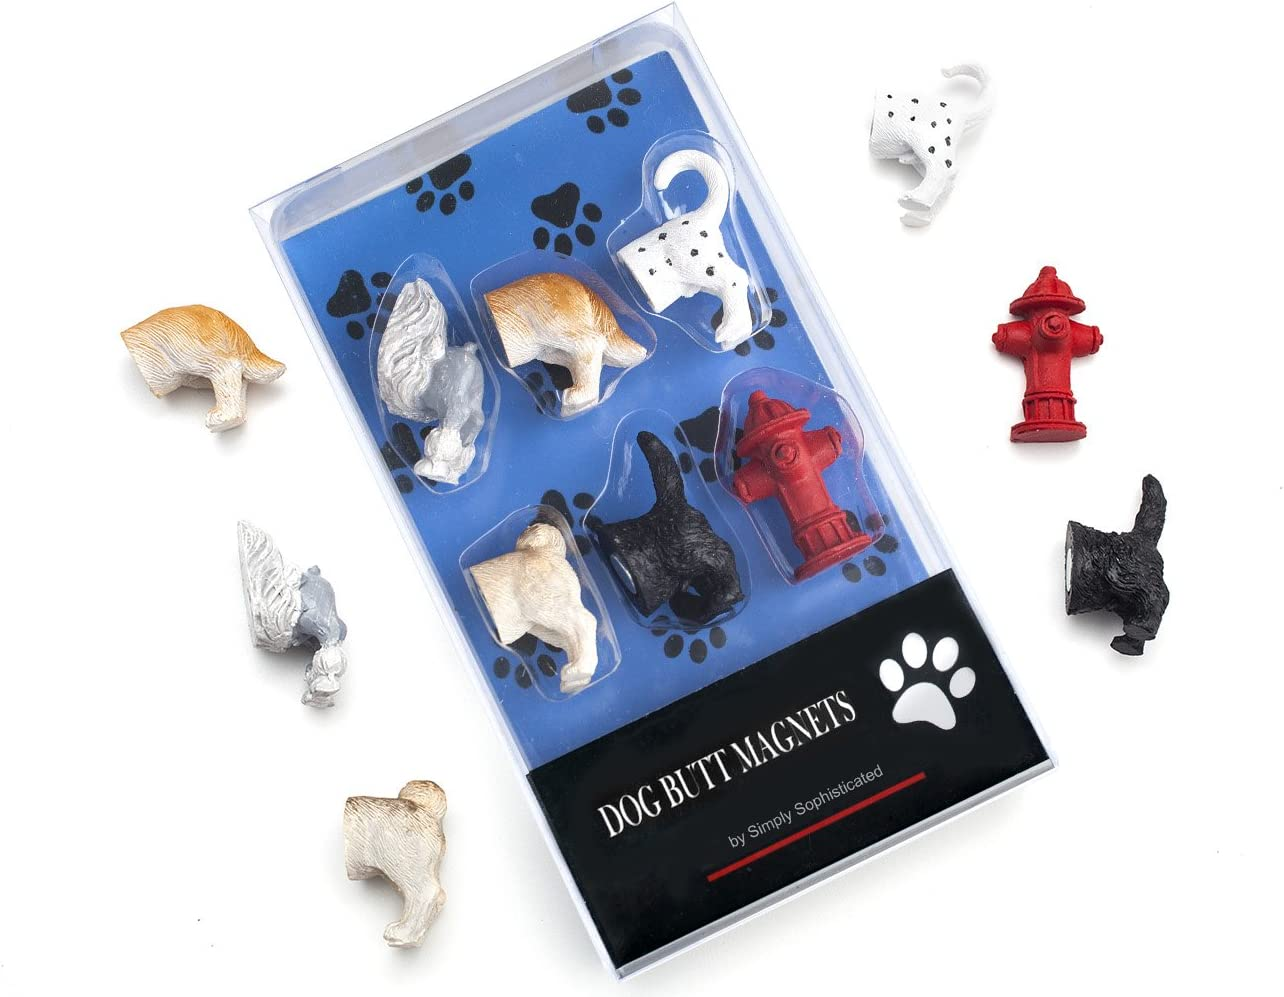 Dog Butt Refrigerator Magnets for Dog Lovers Home and Office Decorations